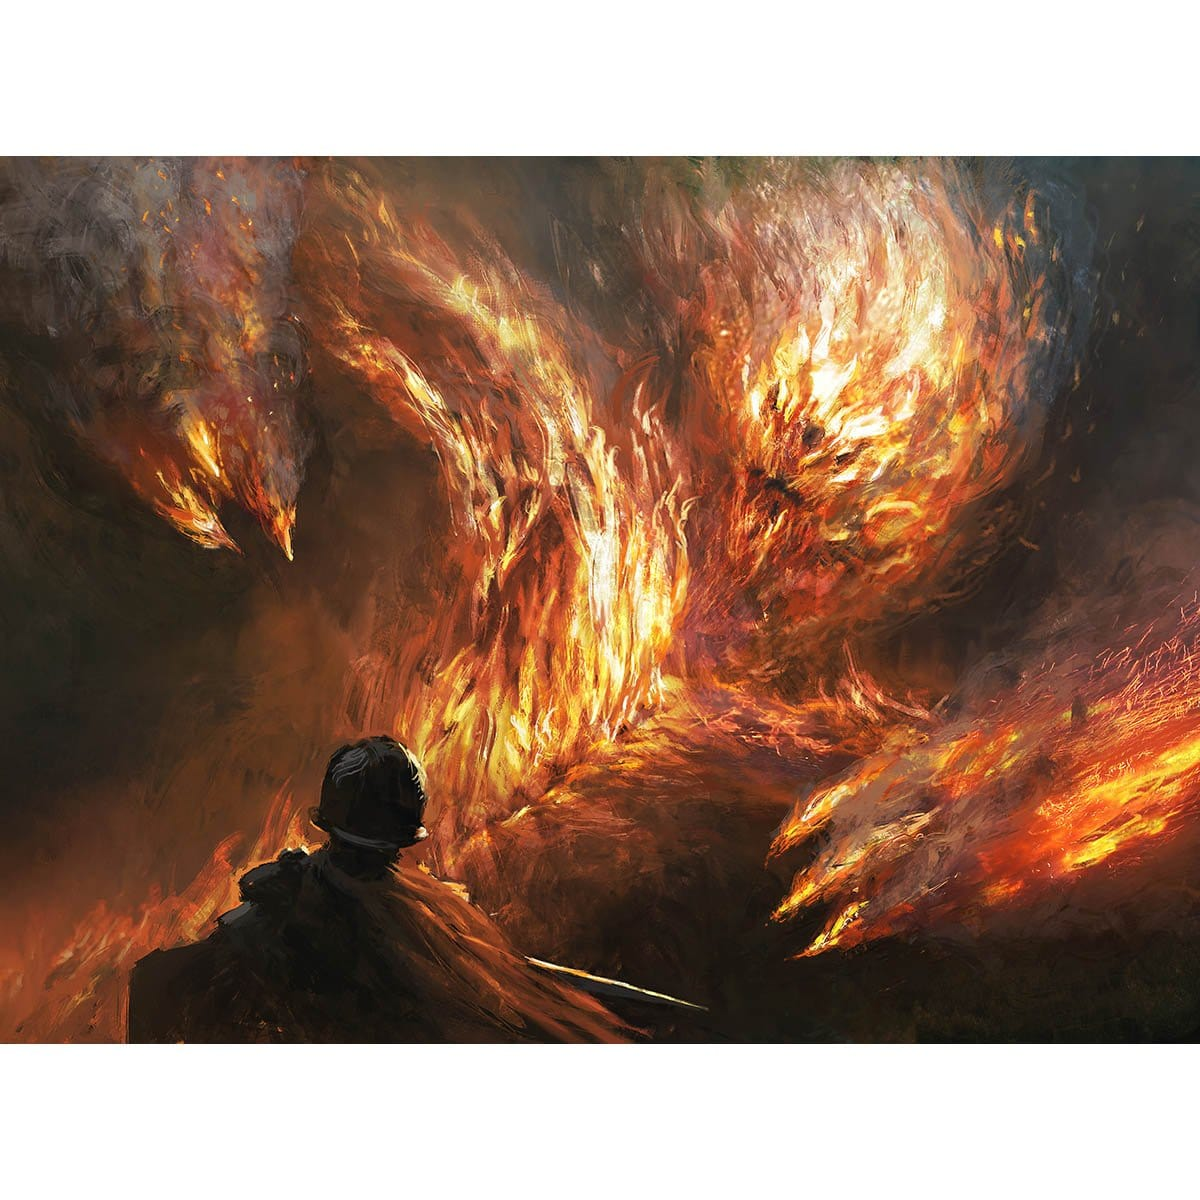 Firefiend Elemental Print - Print - Original Magic Art - Accessories for Magic the Gathering and other card games